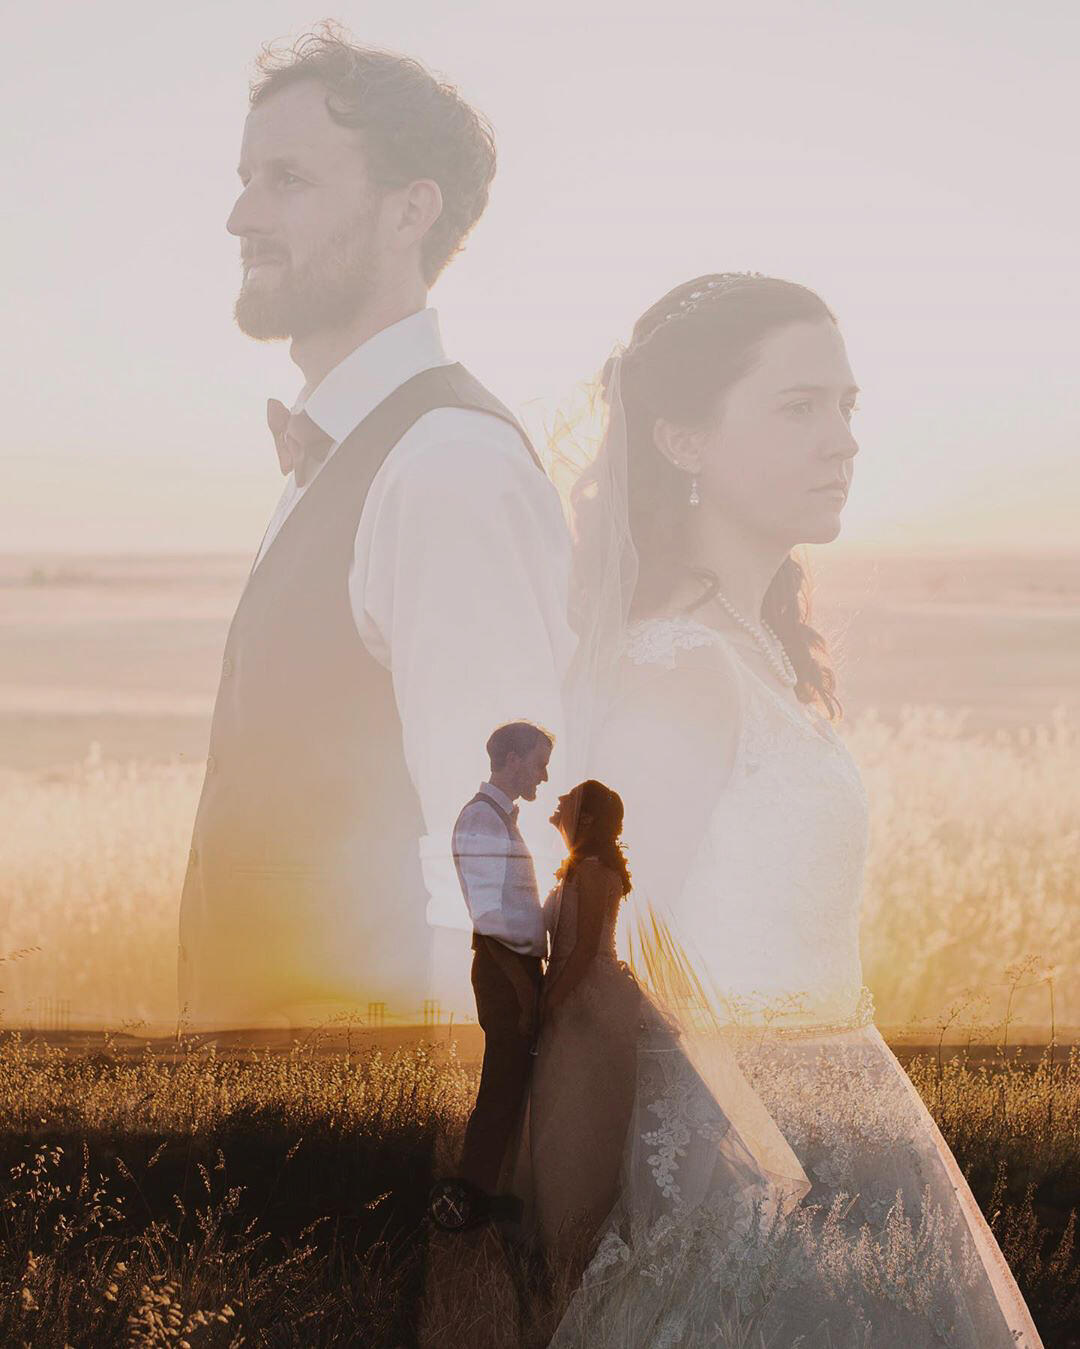 double exposure of couple in field wearing wedding clothes